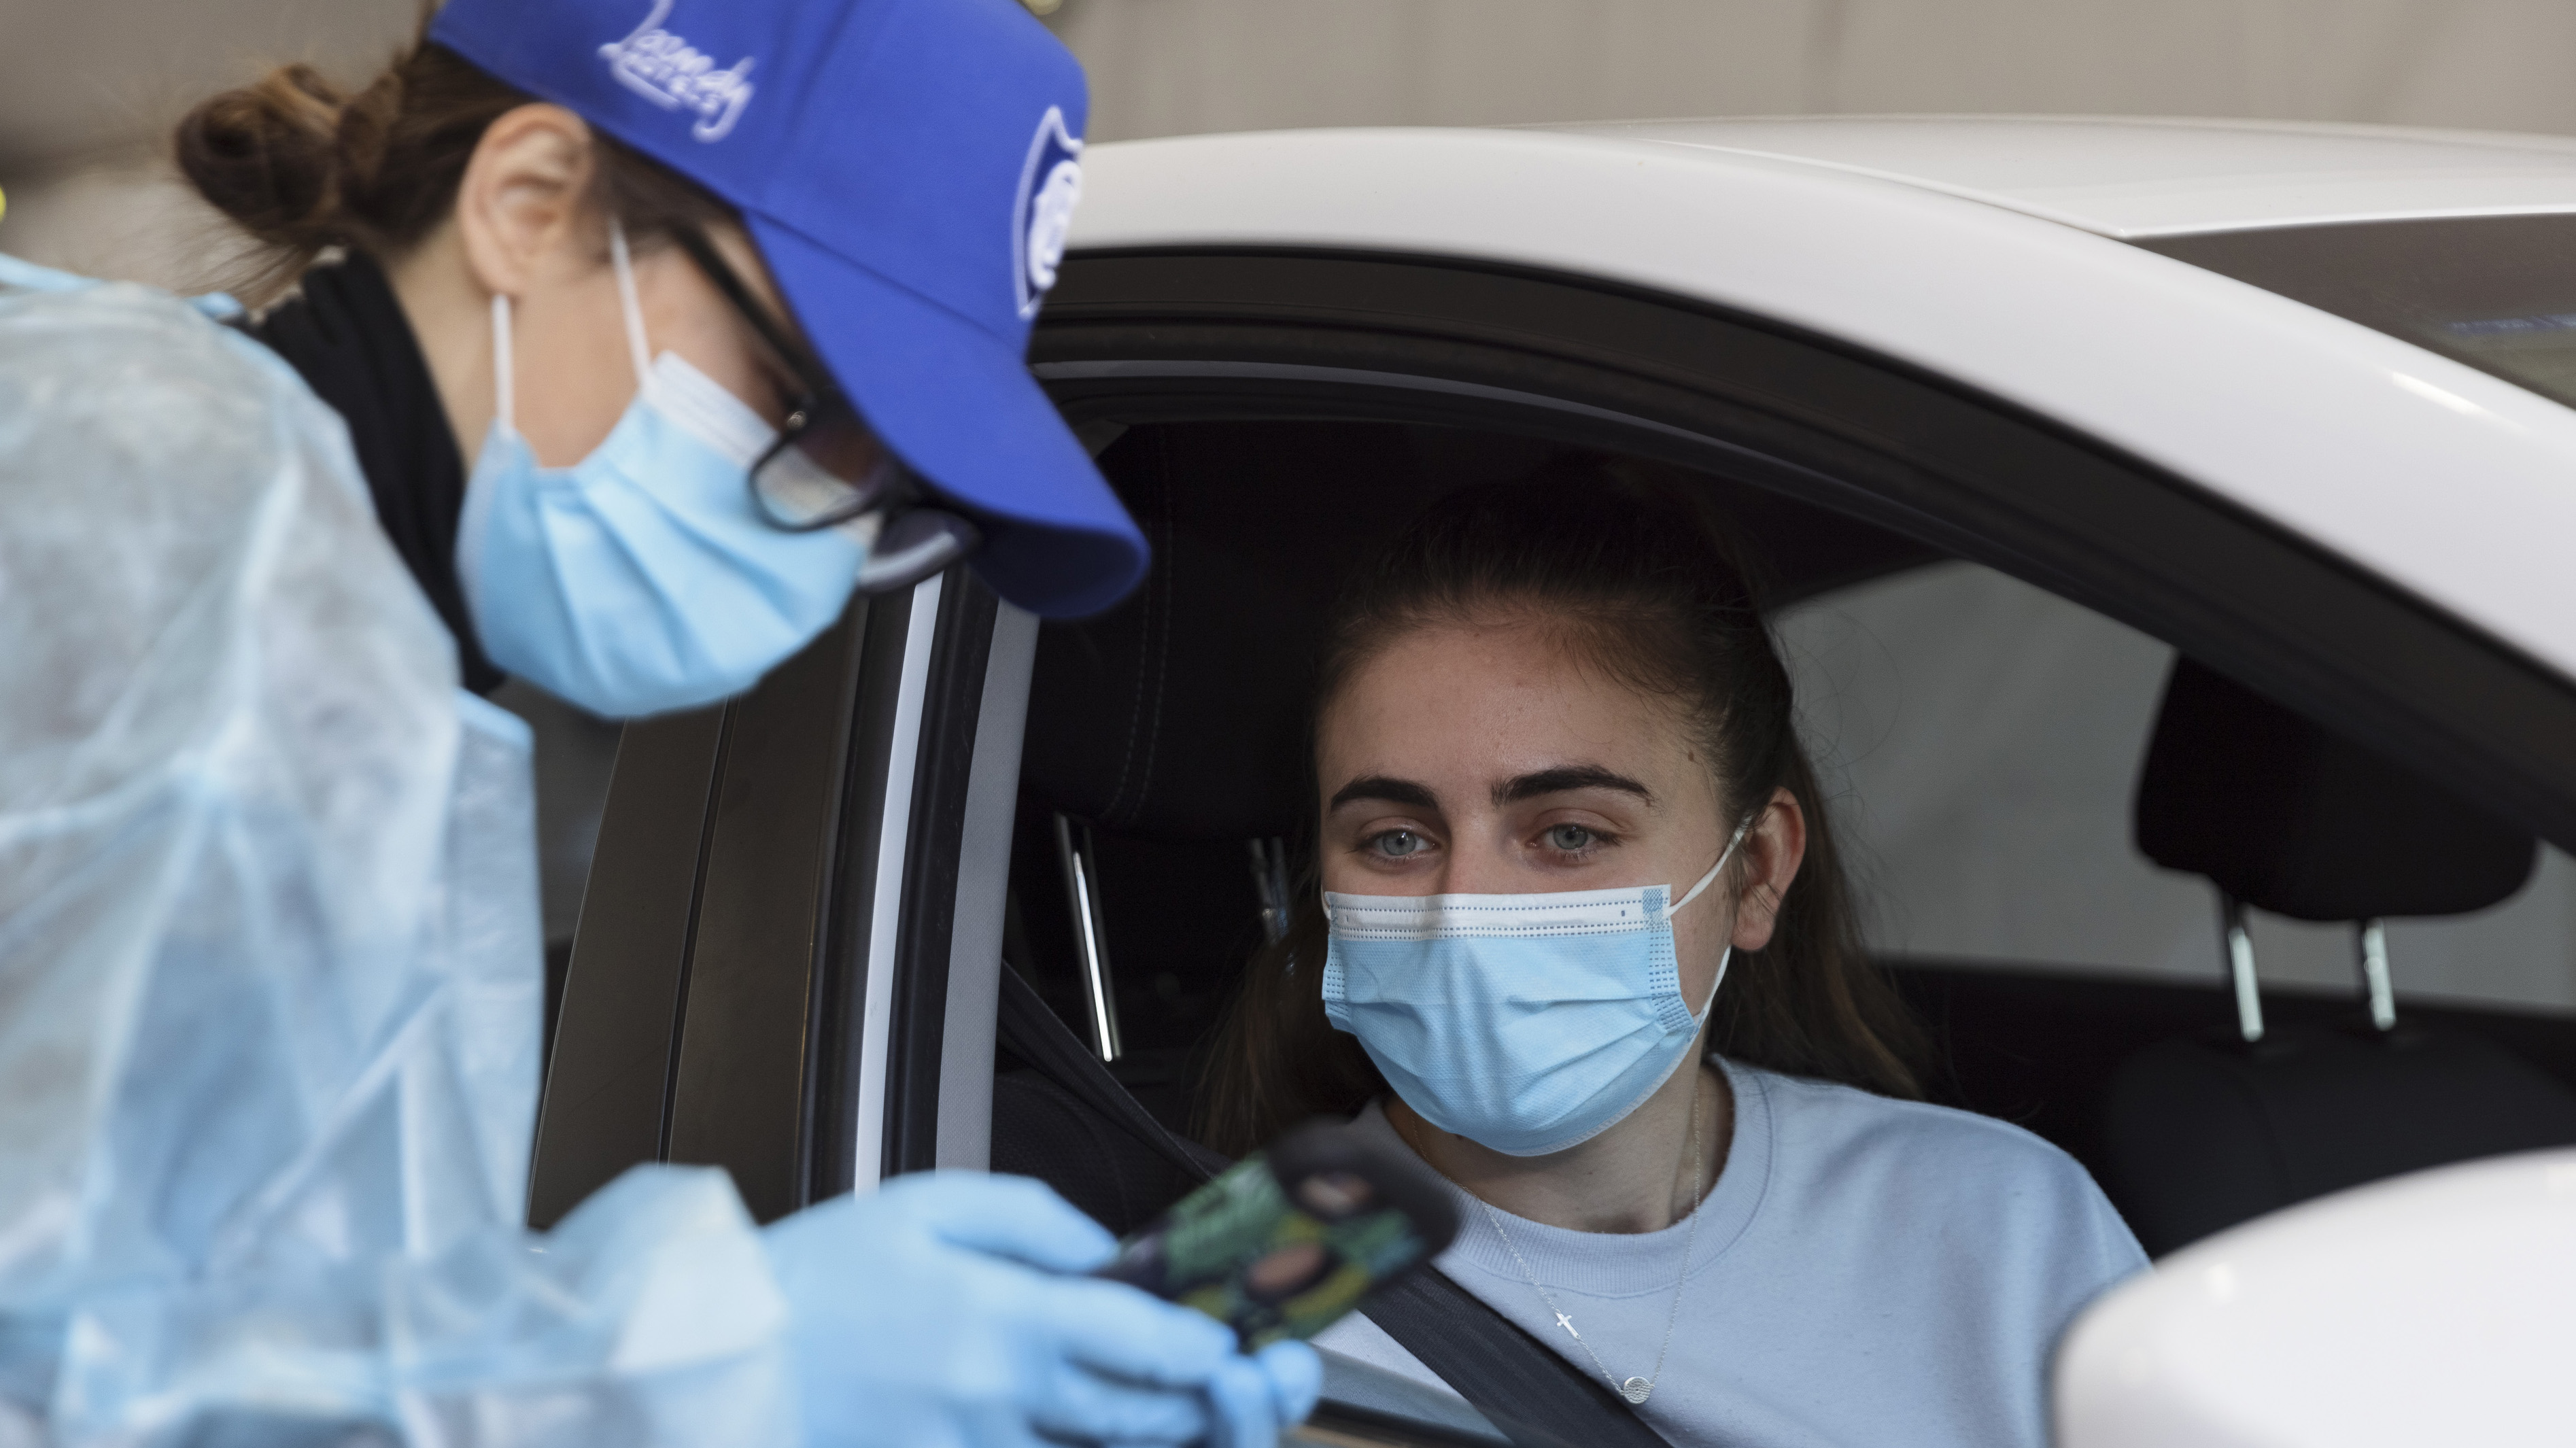 A patient arrives to receive a COVID-19 vaccine at a new drive-through vaccination clinic  in Sydney.